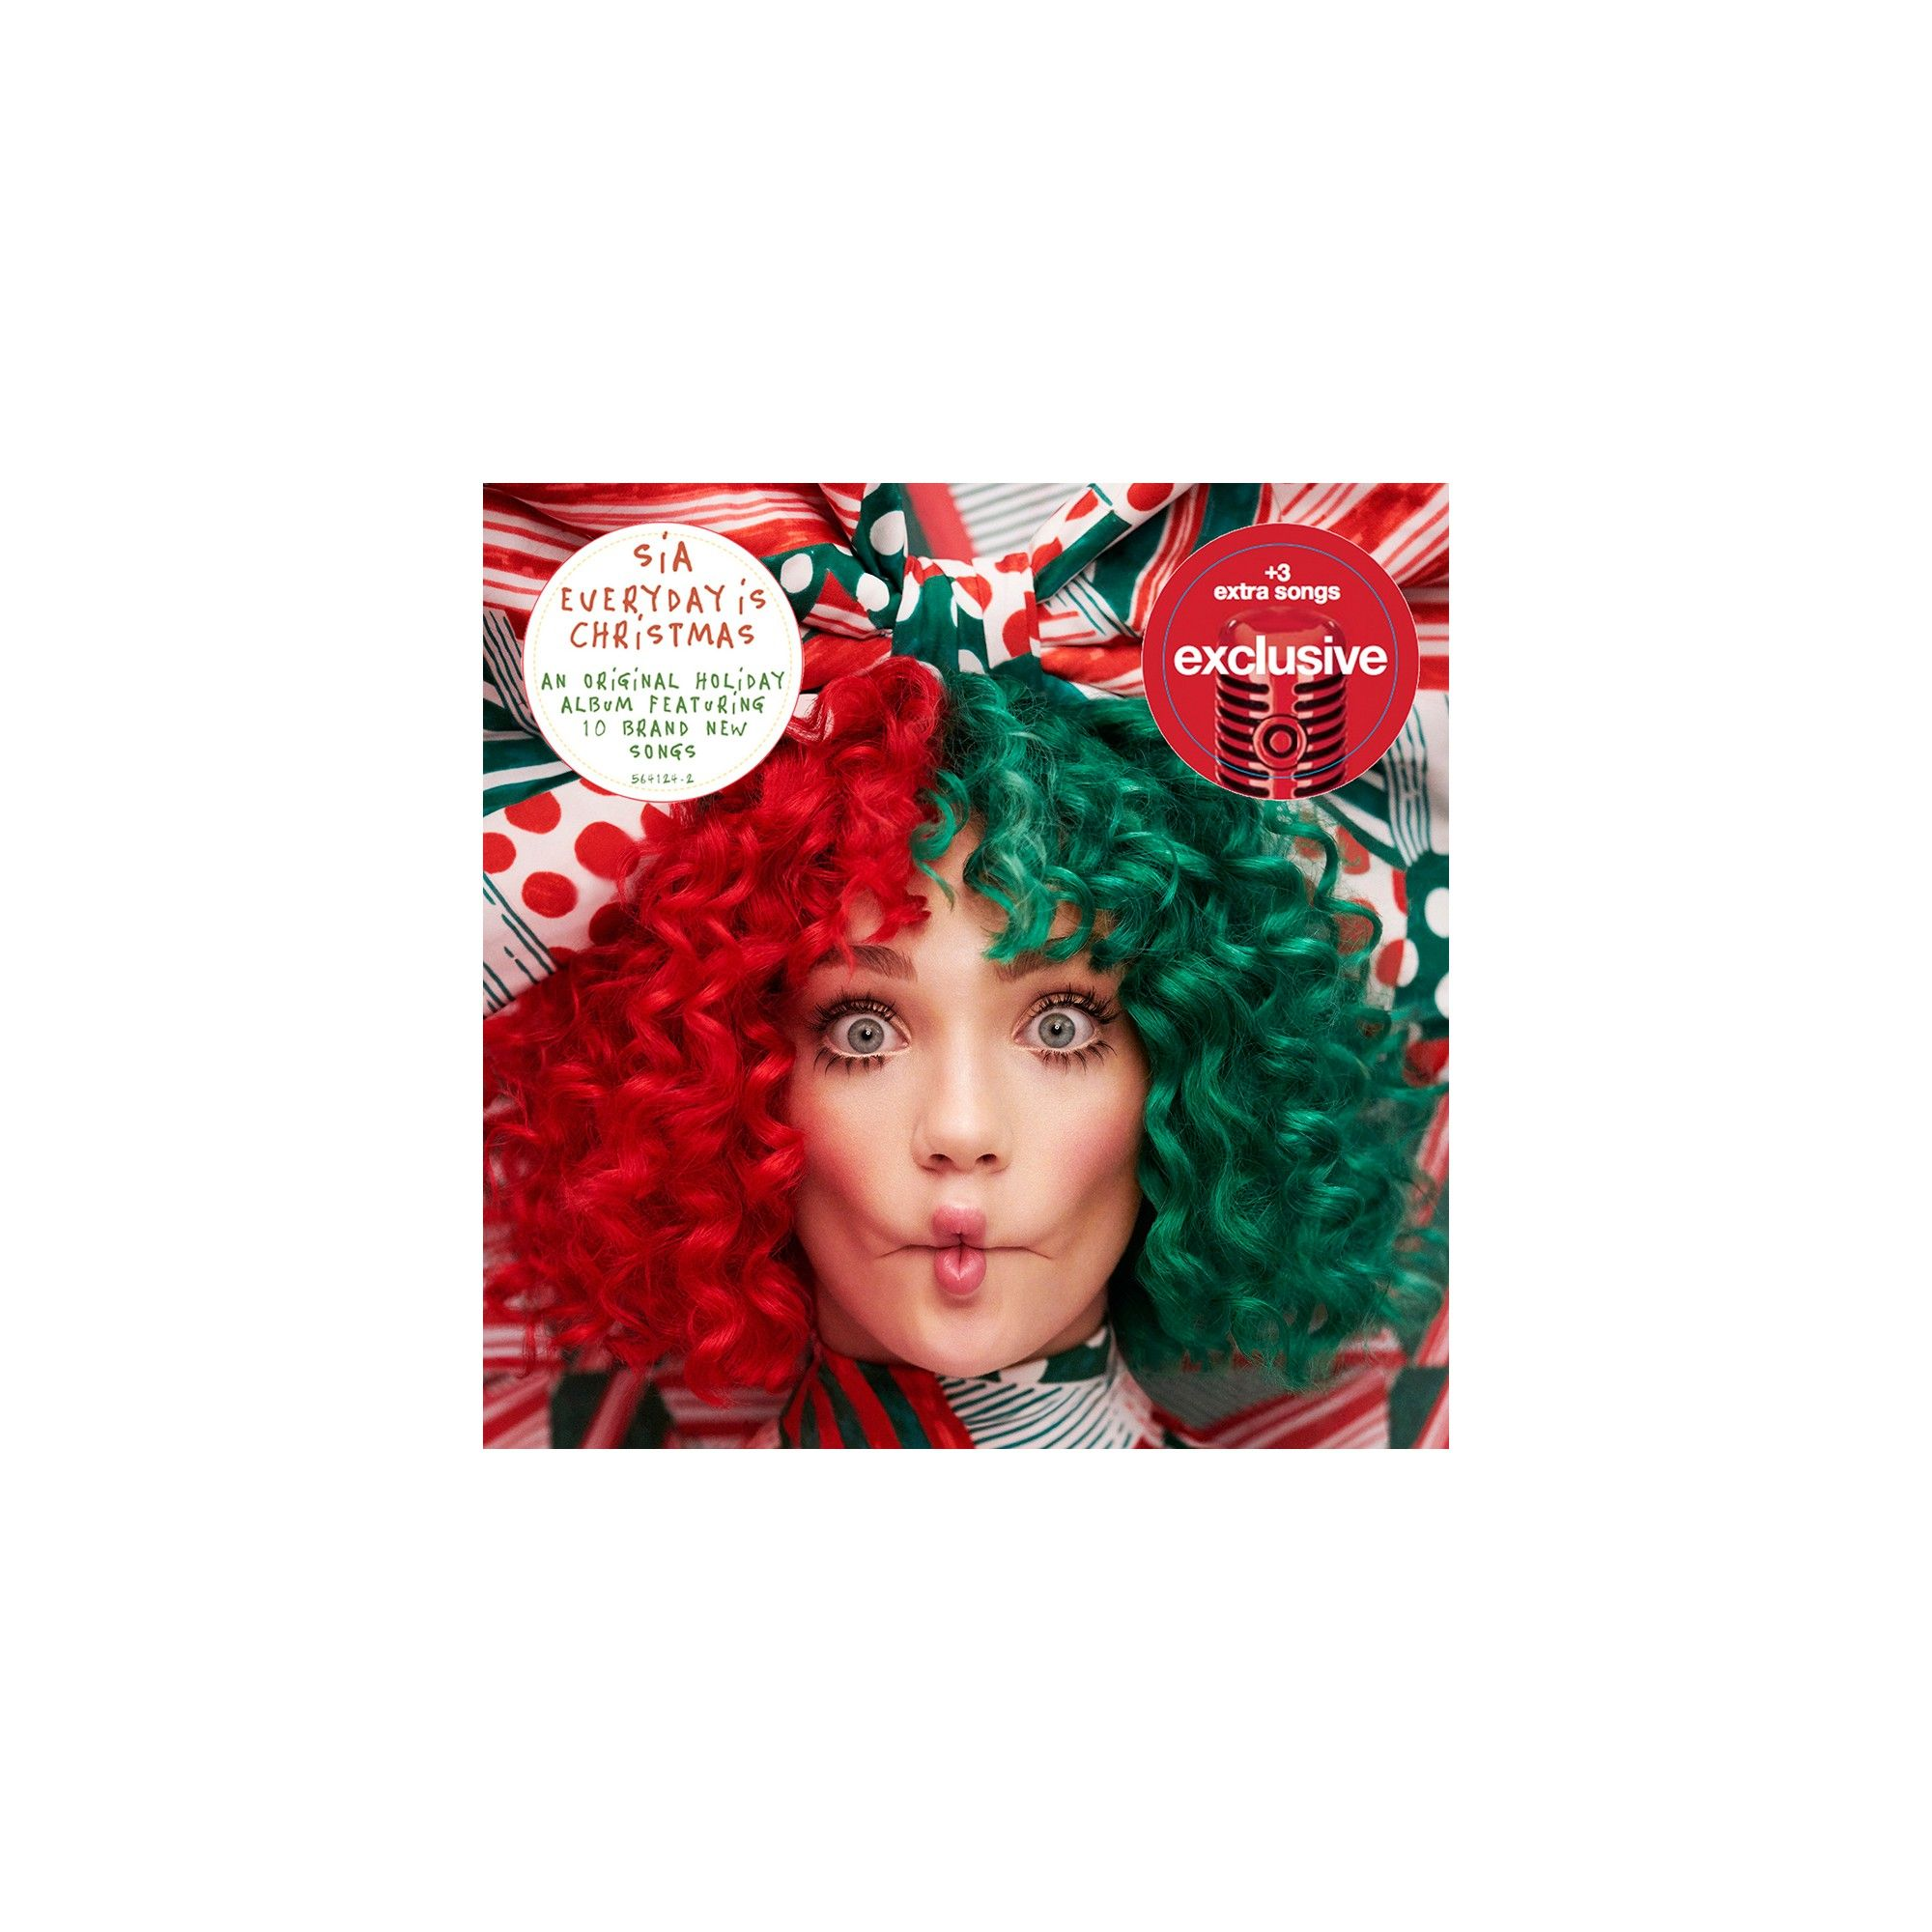 Sia Every Day Is Christmas Target Exclusive Vinyl Lights